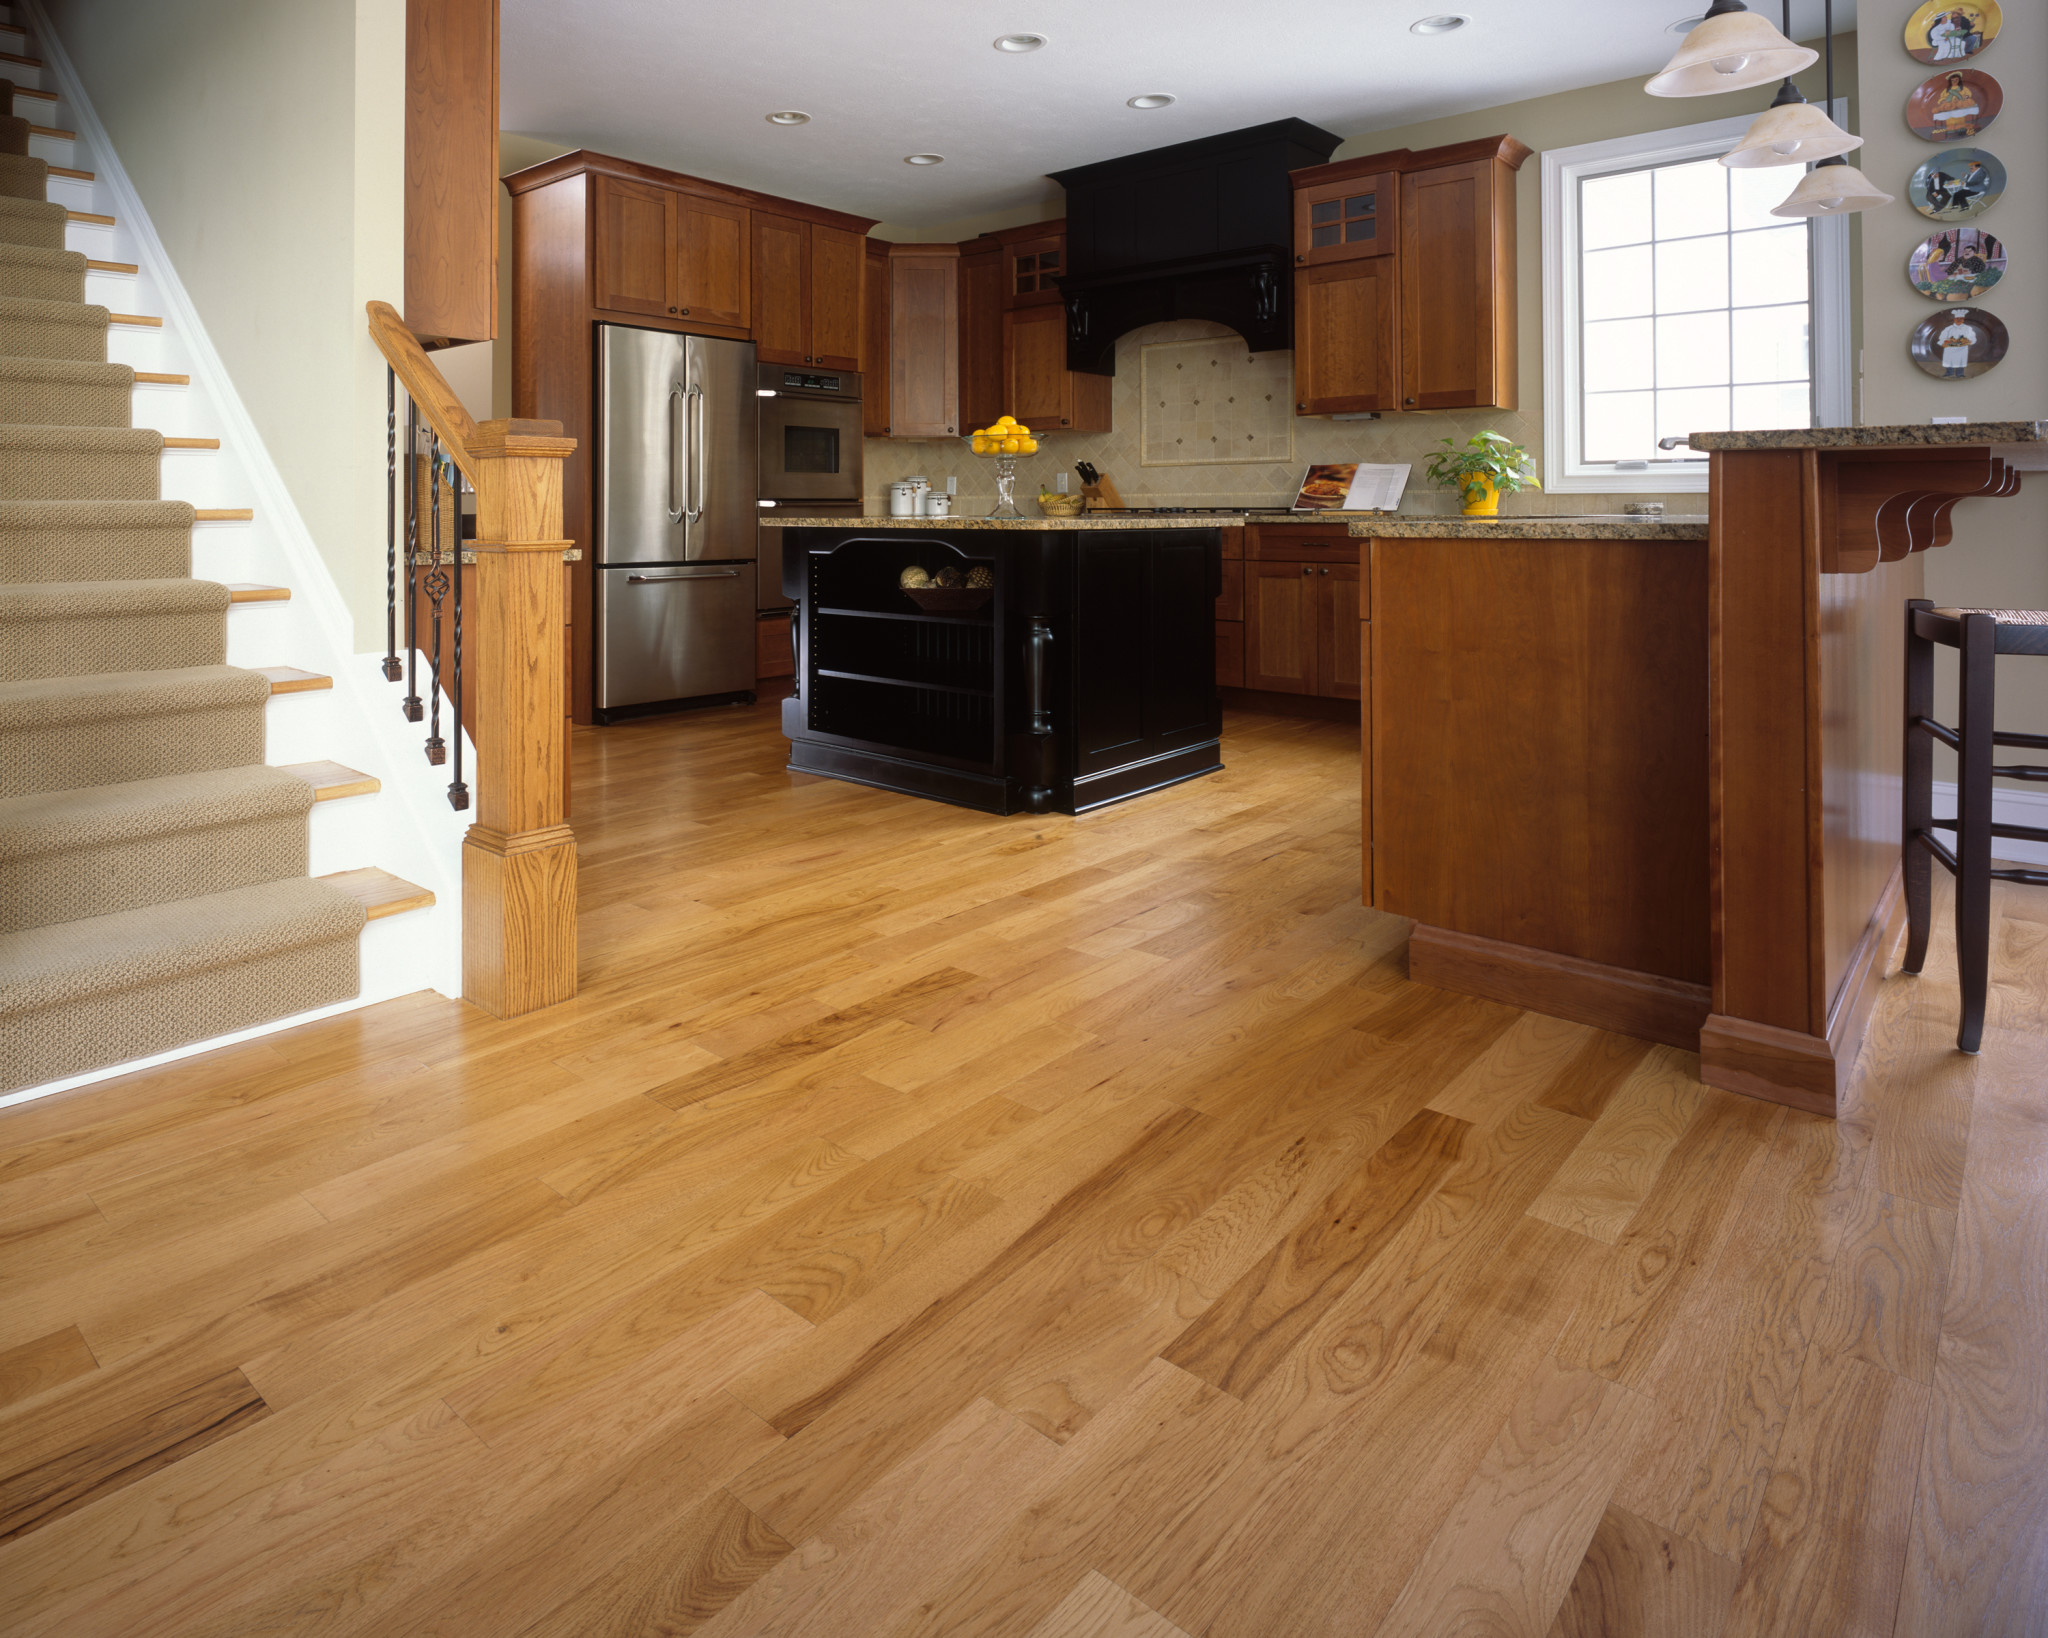 Floor Covering For Kitchens Wood Floors Tile Linoleum Jmarvinhandyman